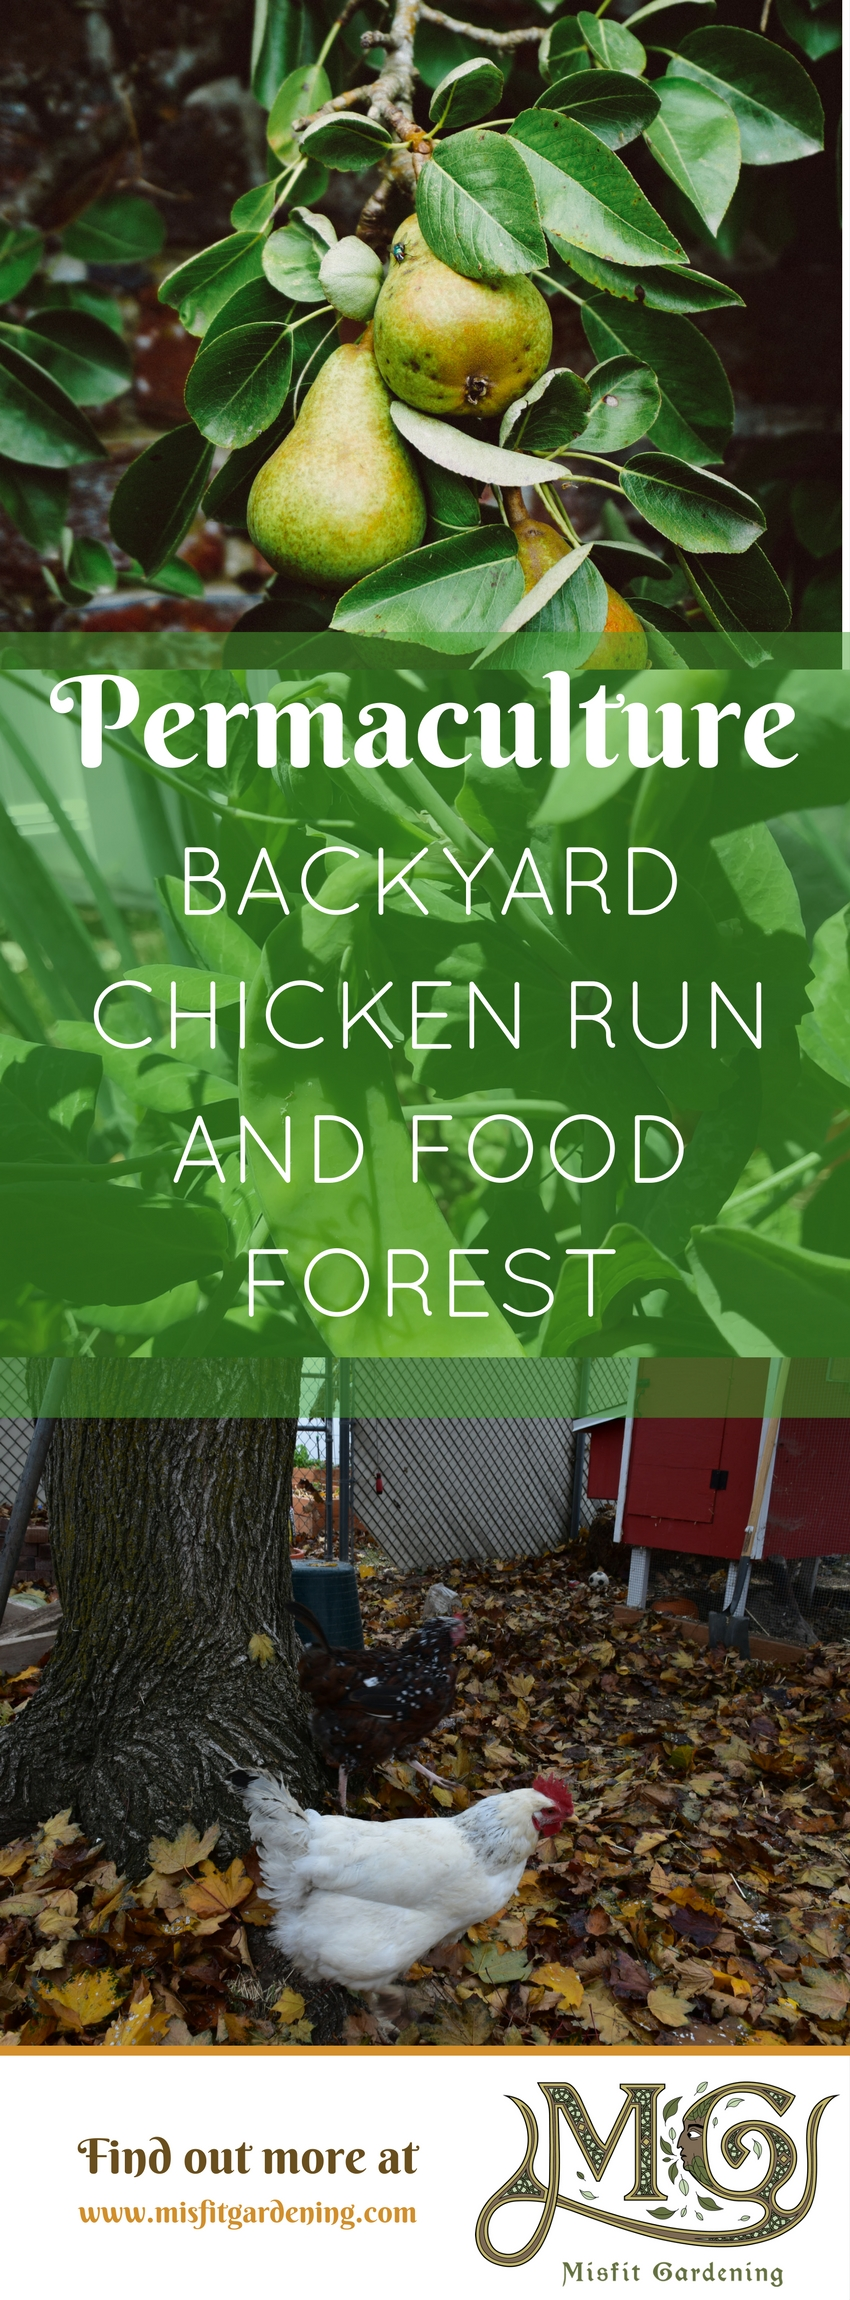 Backyard chicken runs can be designed as productive food forests for you and the chickens! Click to find out more about permaculture chicken yards and food forests or pin it for later